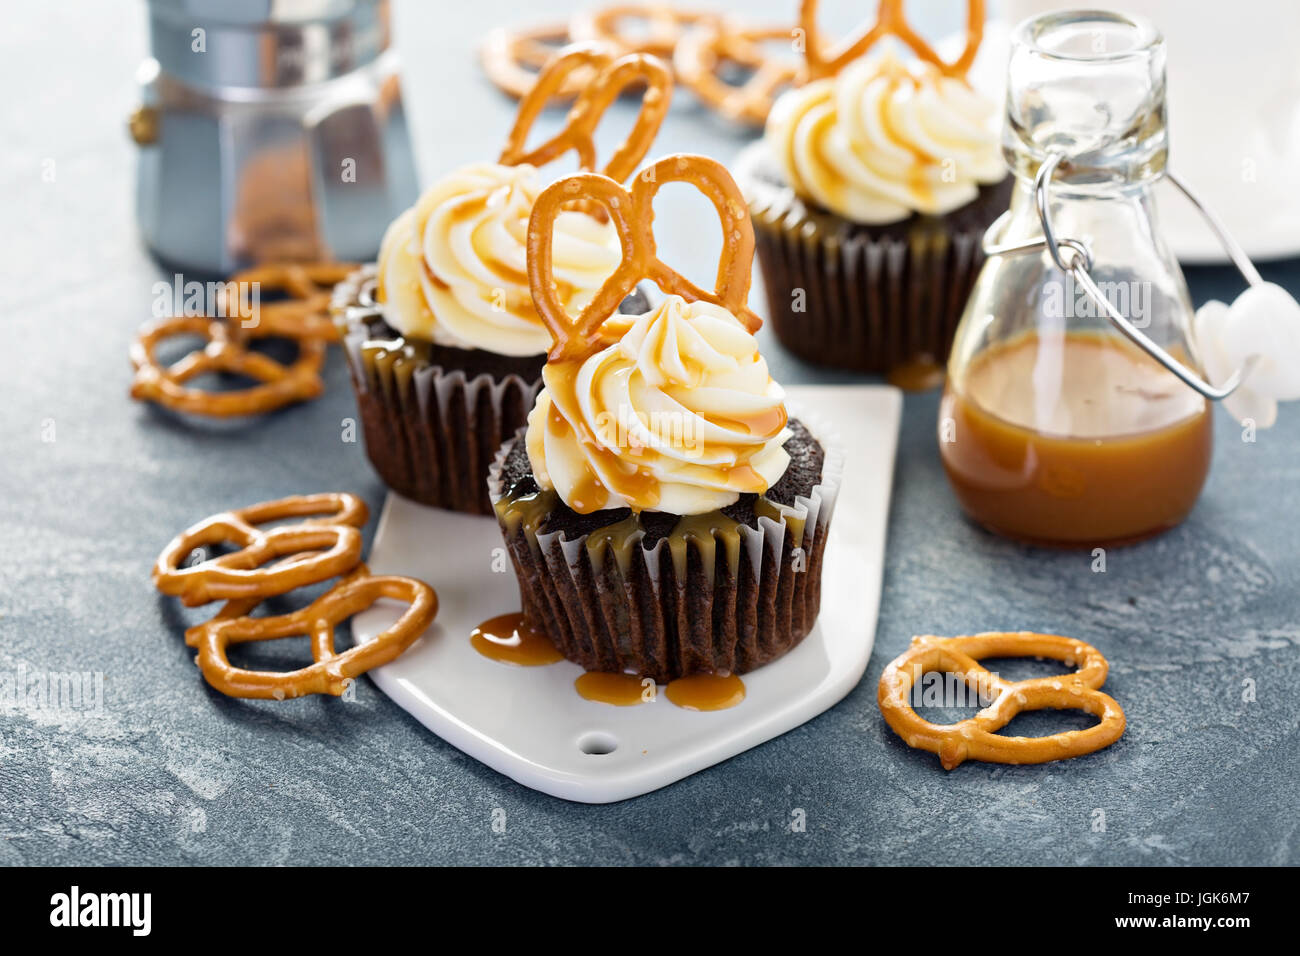 Salted caramel cupcakes with pretzels - Stock Image